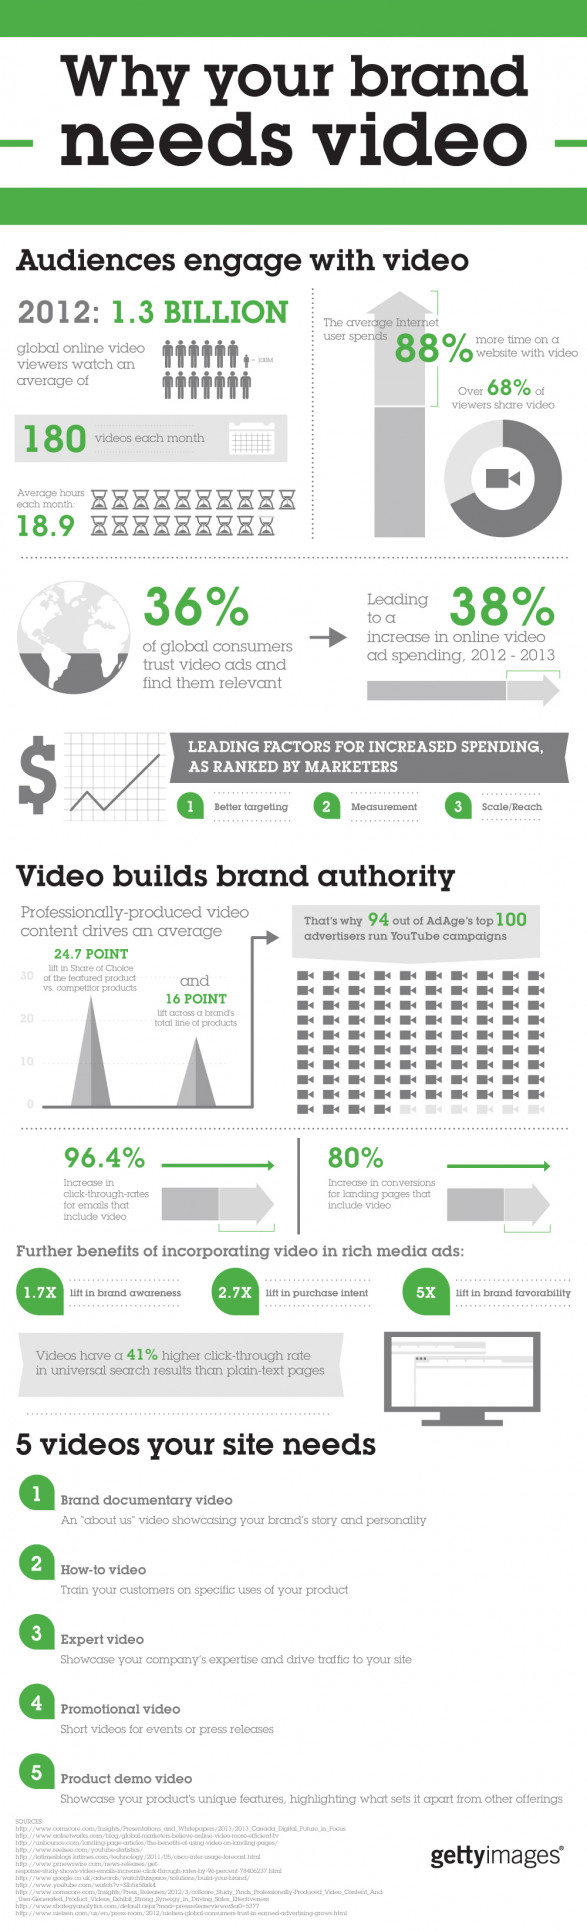 Why your brand needs video